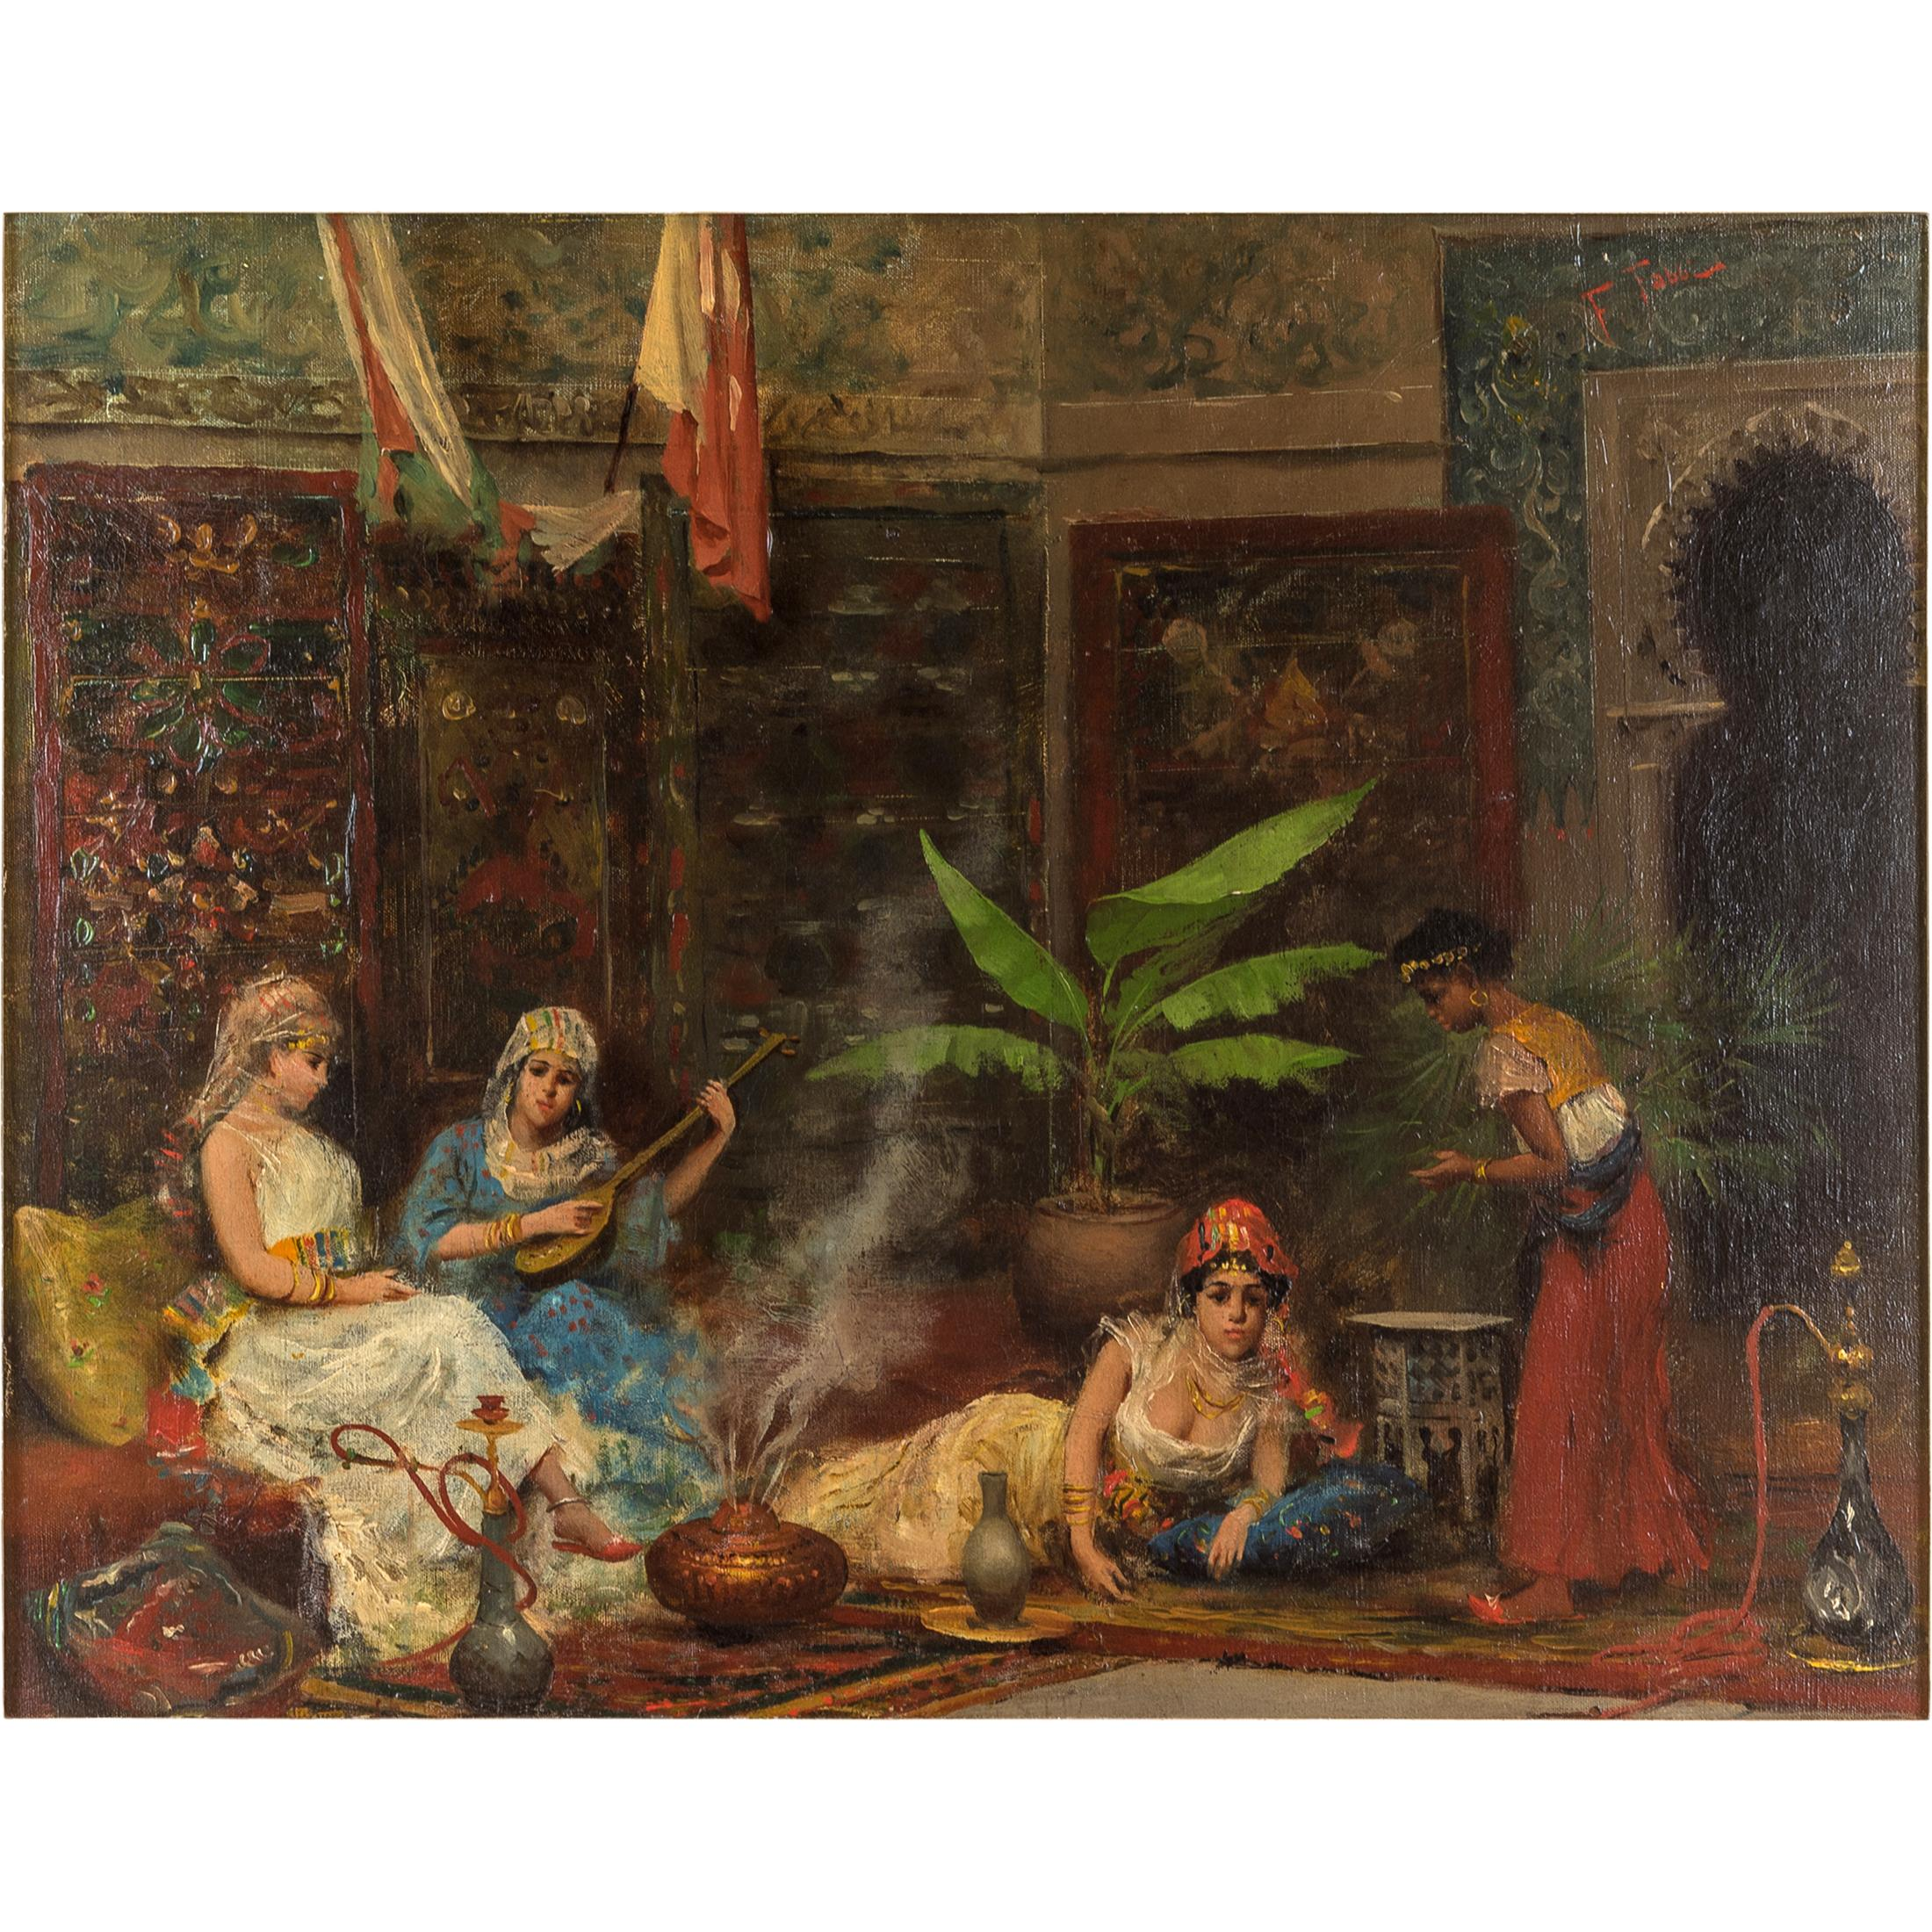 Concubines in the Harem